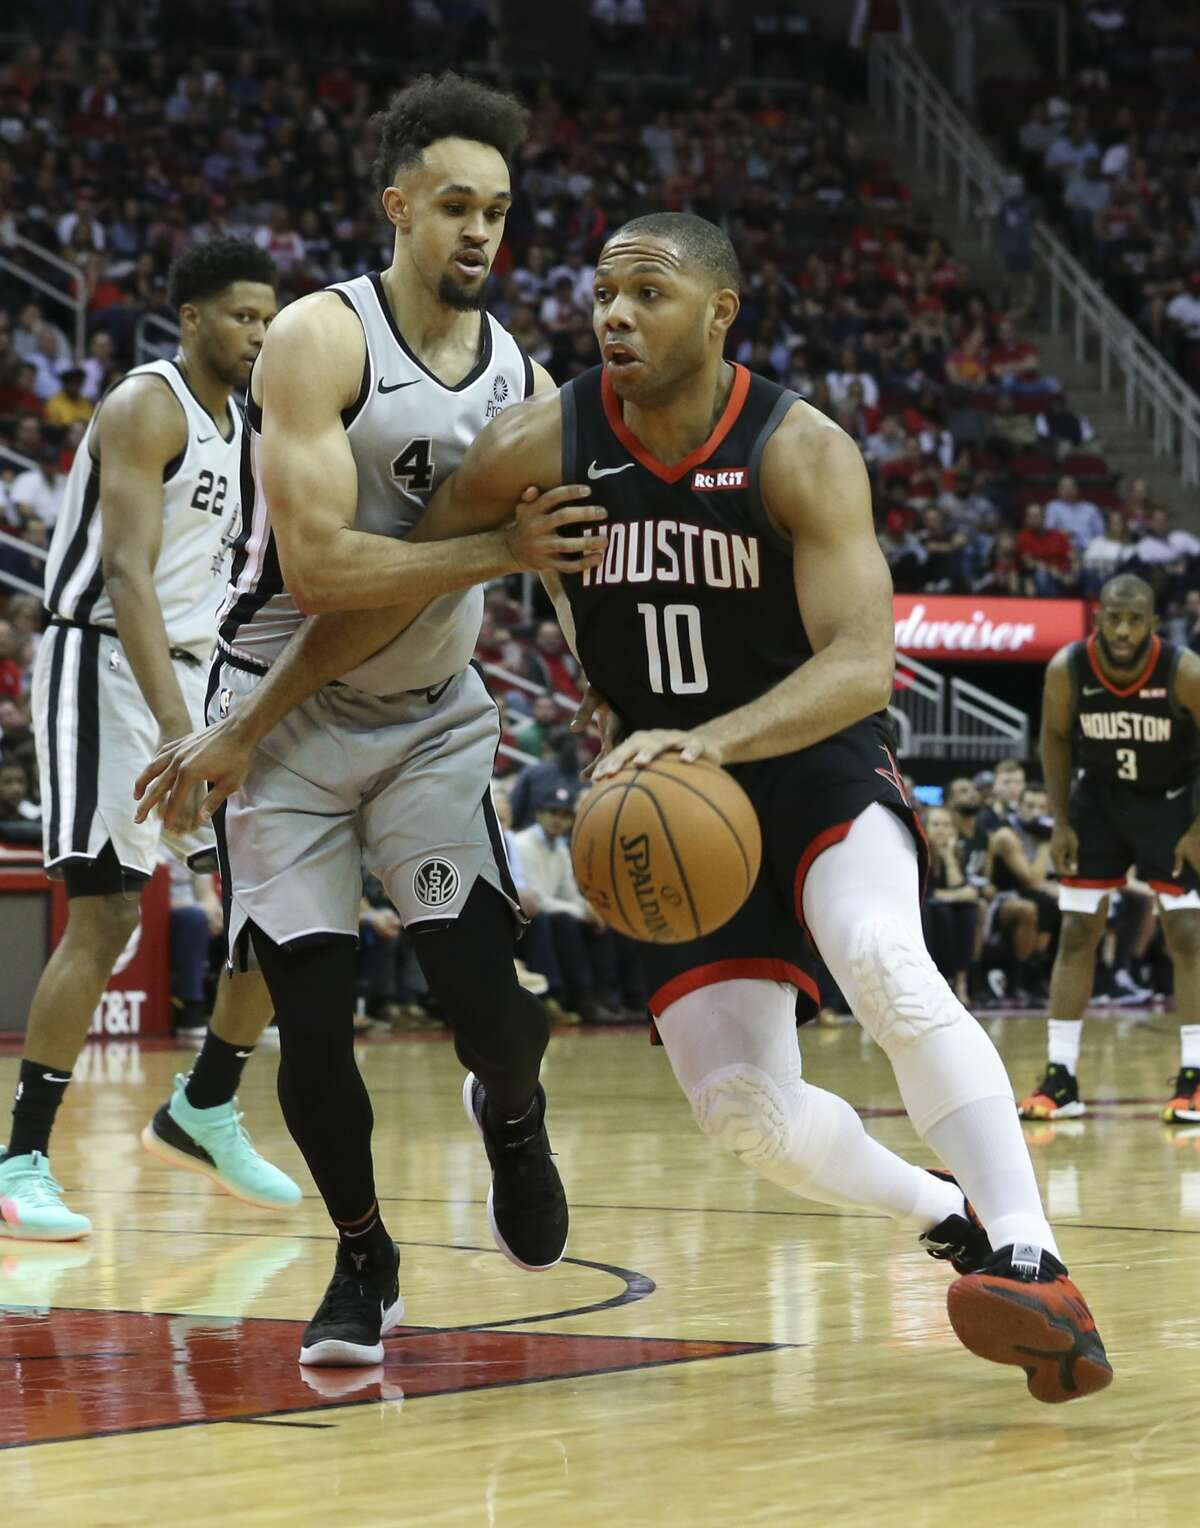 Houston Rockets guard Eric Gordon (10) dribbles toward the basket while San Antonio Spurs guard Derrick White (4) is defensing during the second quarter of the NBA game at Toyota Center on Friday, March 22, 2019, in Houston.